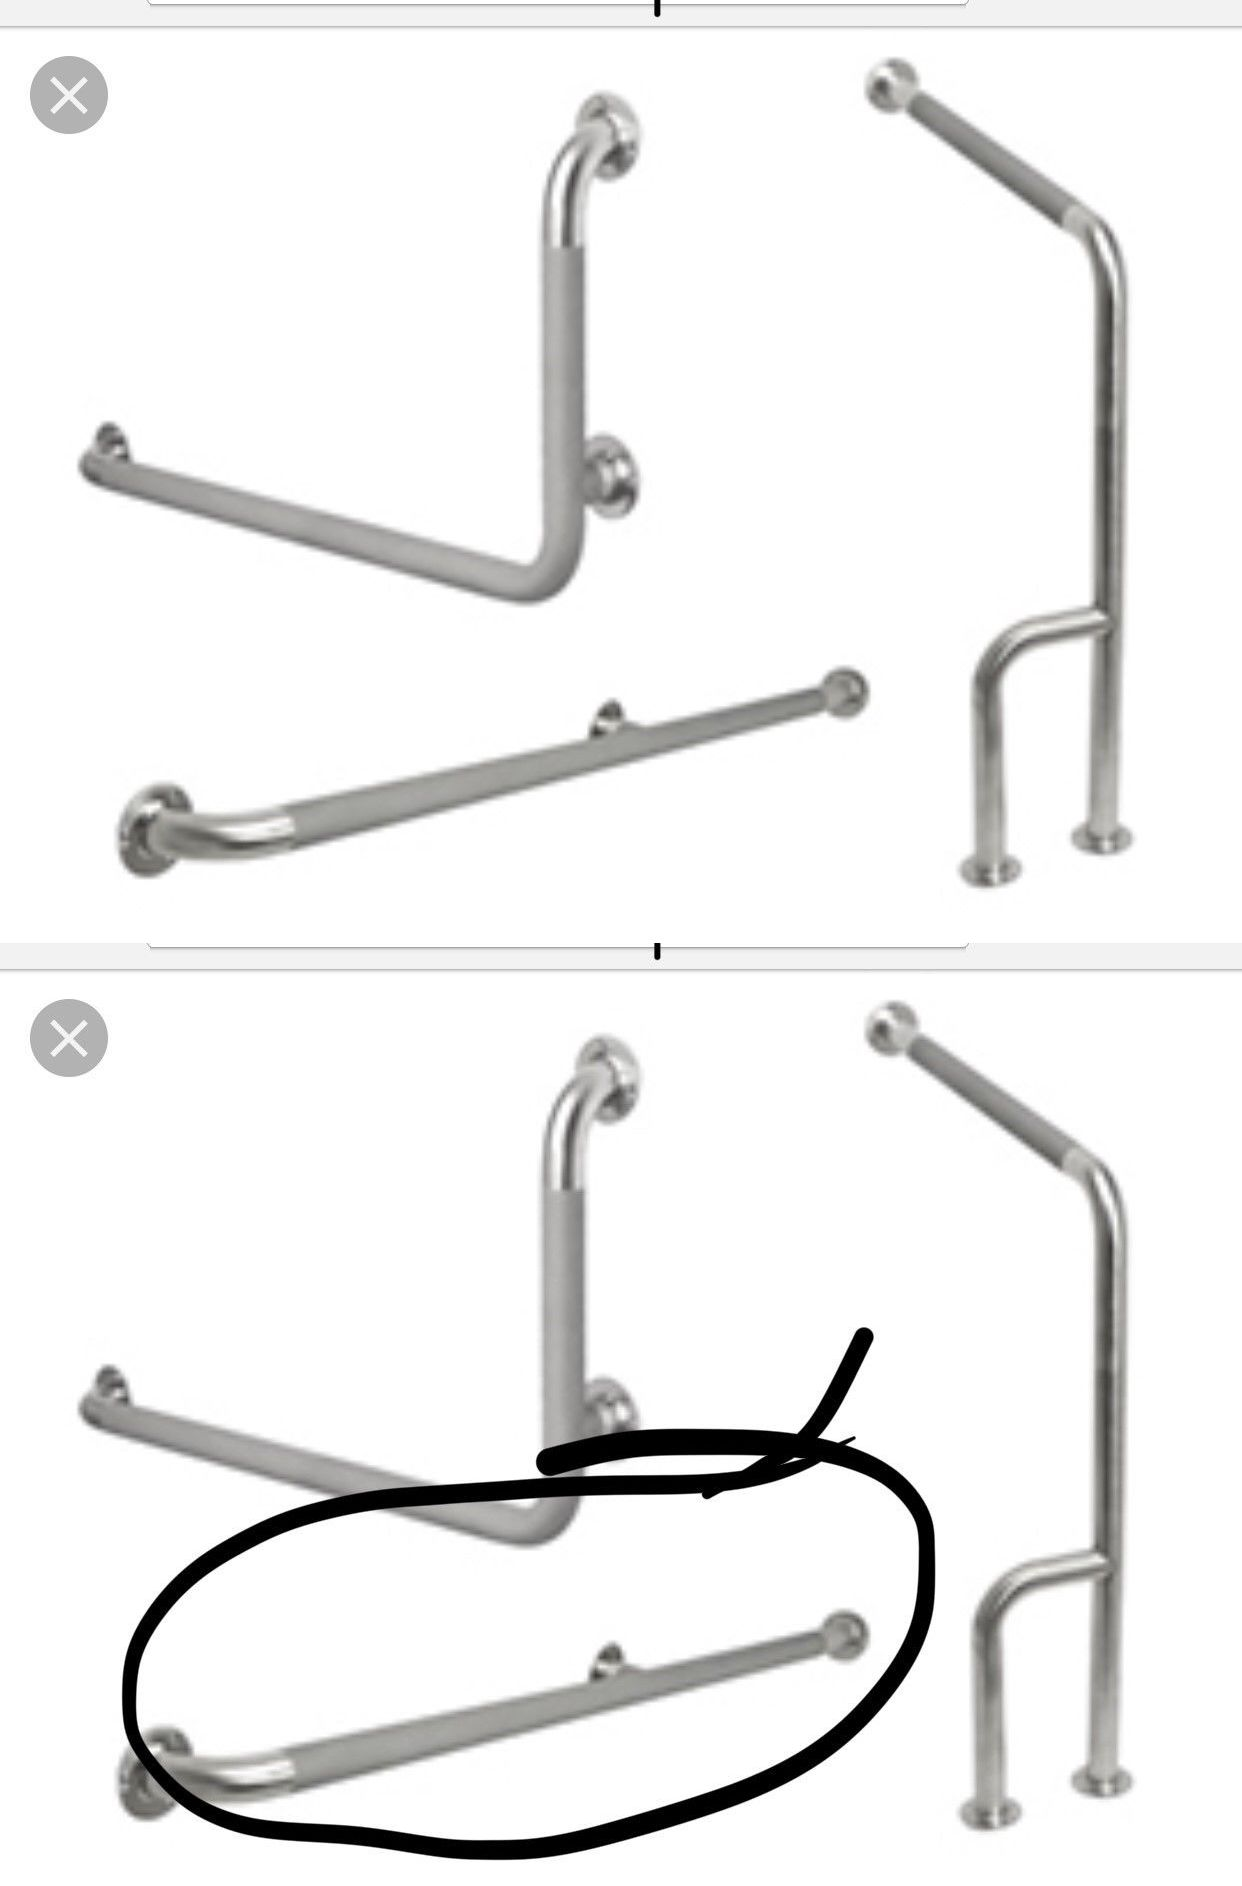 Handles And Rails 171537: Handicap Grab Bar Bathtub Bathroom Accessories  Shower Safety 36 Inch With Middle  U003e BUY IT NOW ONLY: $24 On EBay!